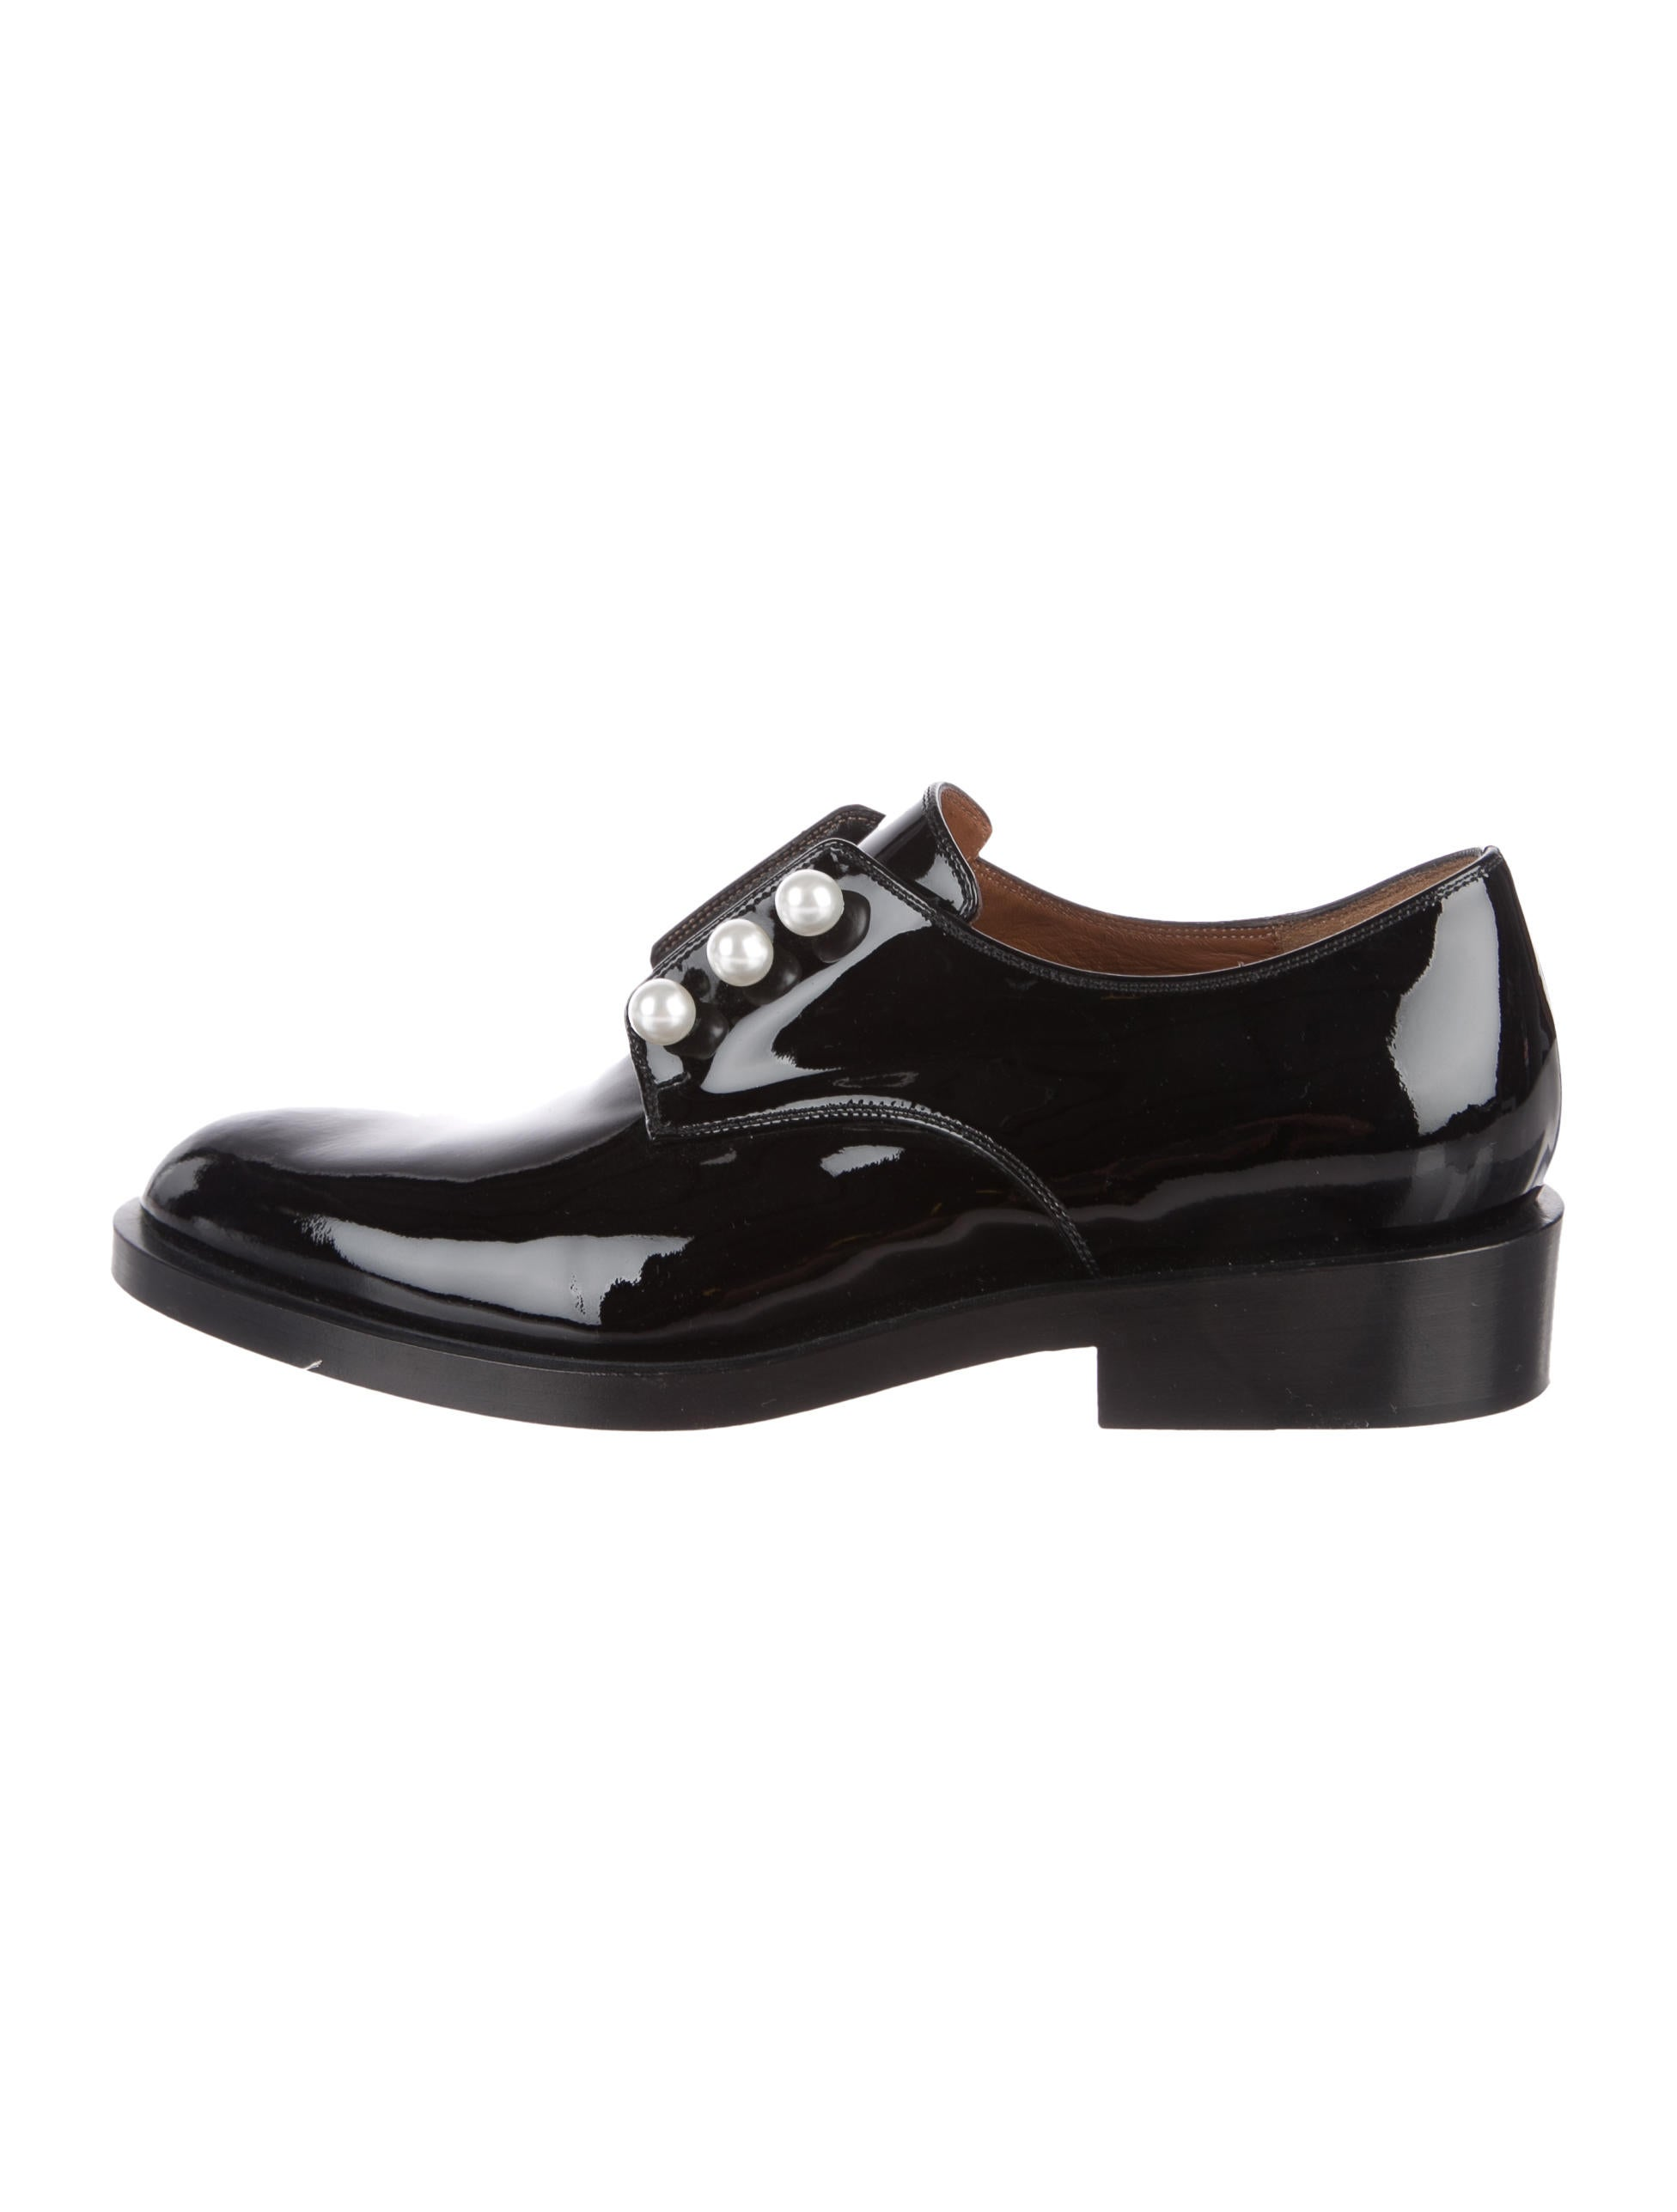 Givenchy faux pearl embellished Derby shoes free shipping limited edition low shipping cheap online cheap sale store cheap wholesale price KGEAc0